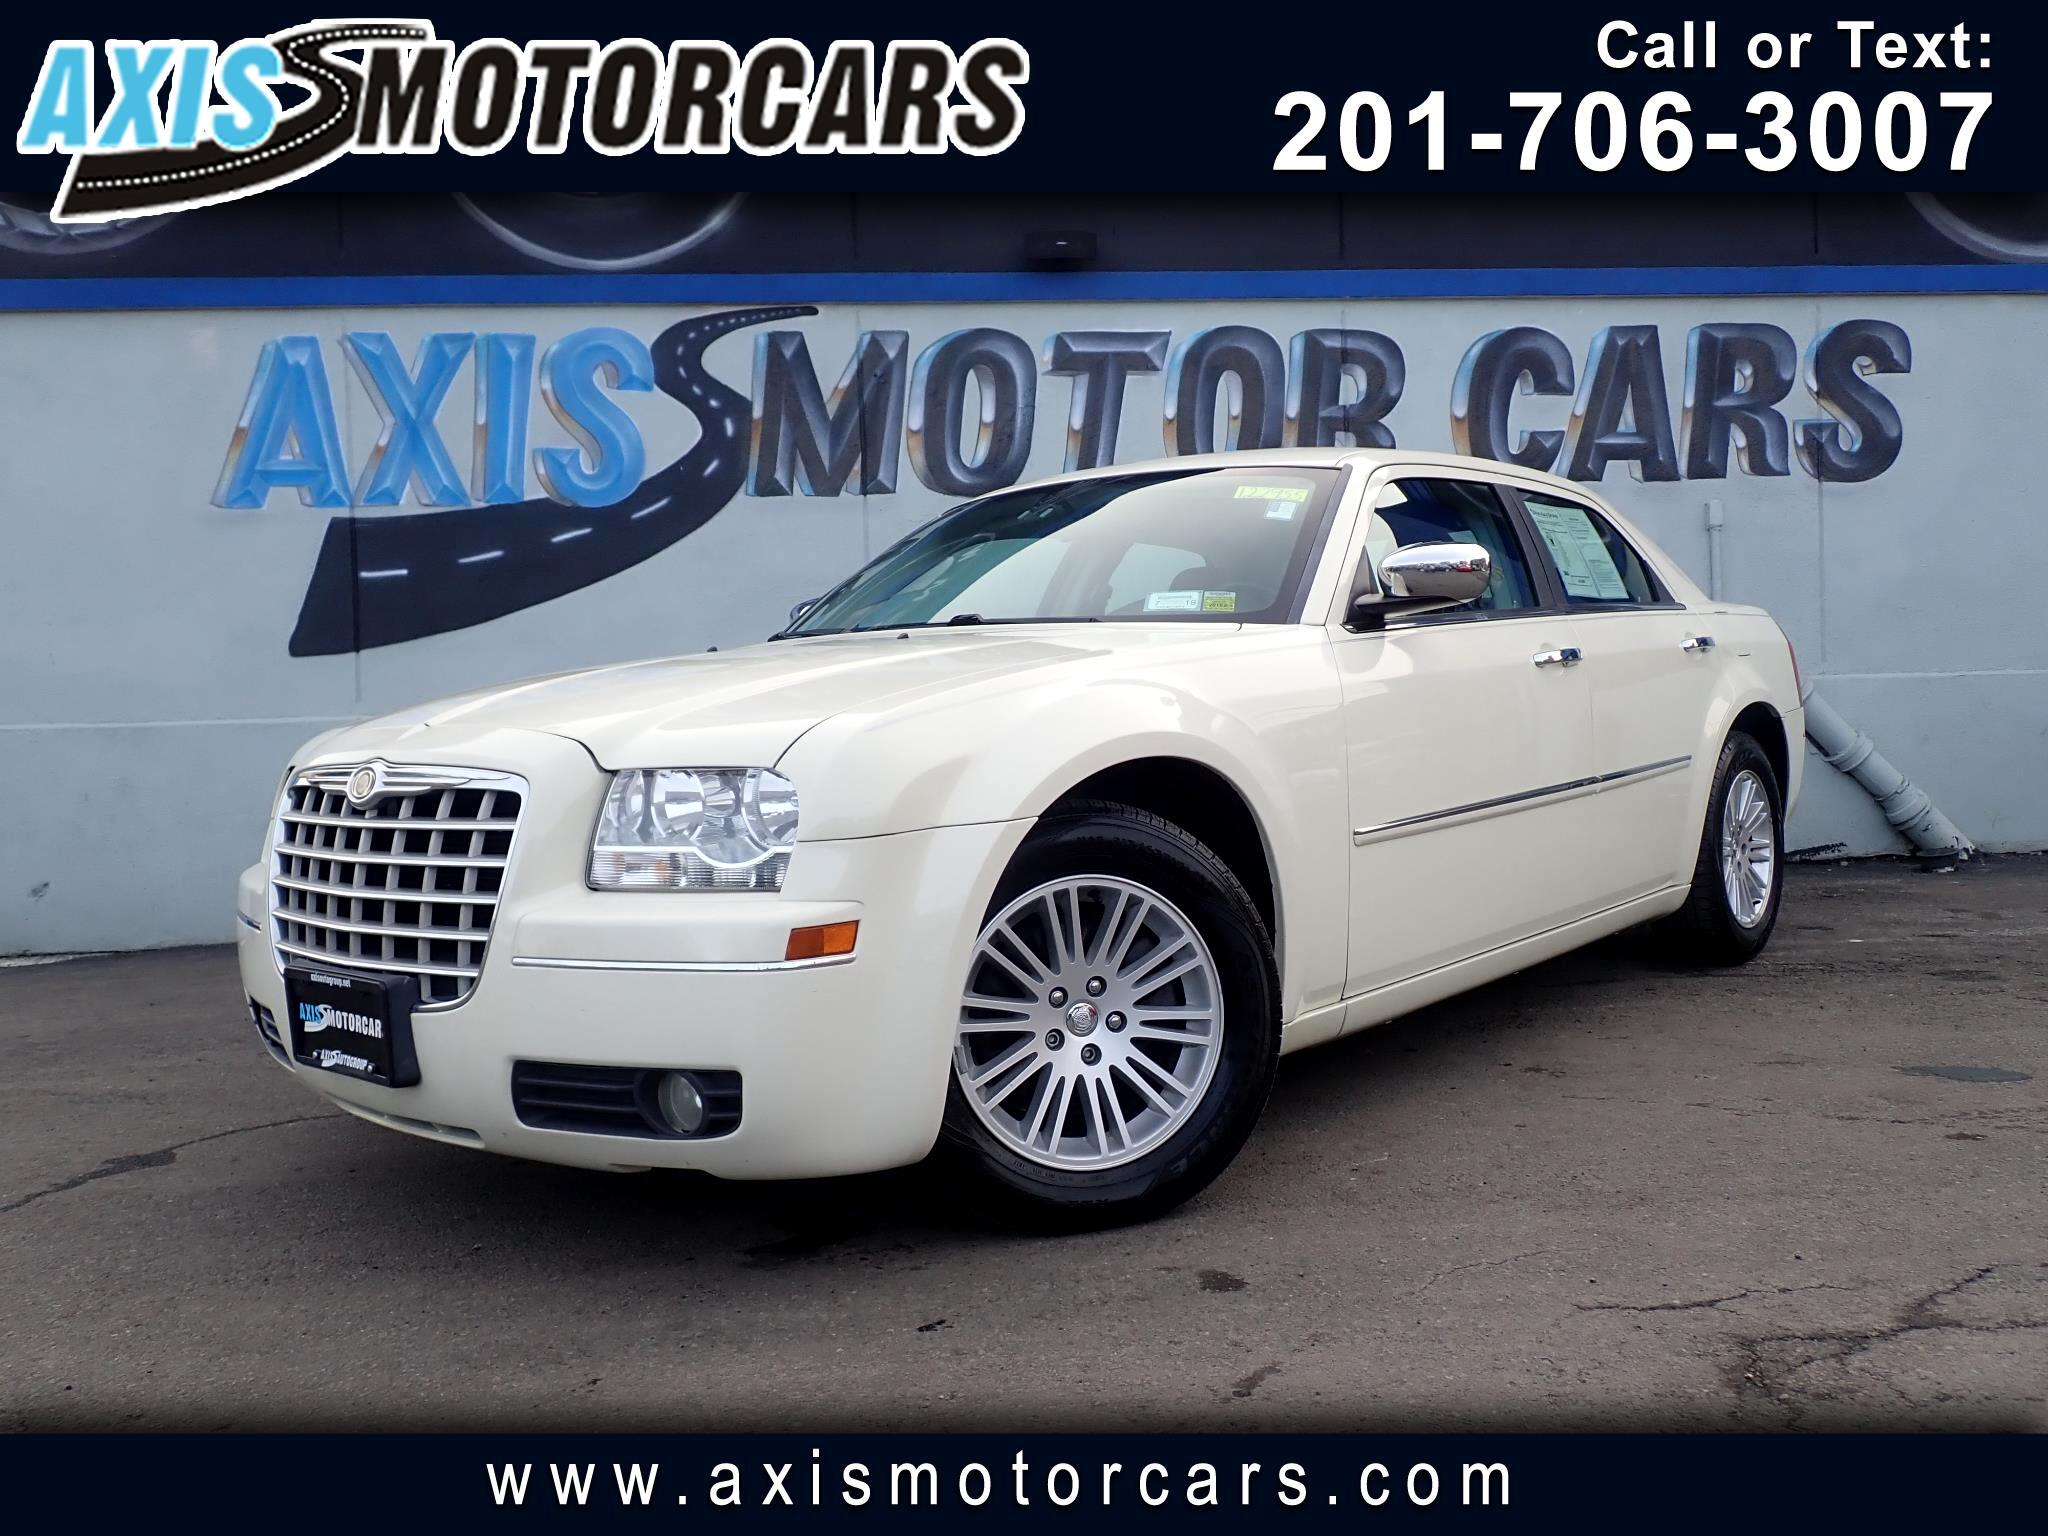 2010 Chrysler 300 Touring w/Navigation Leather